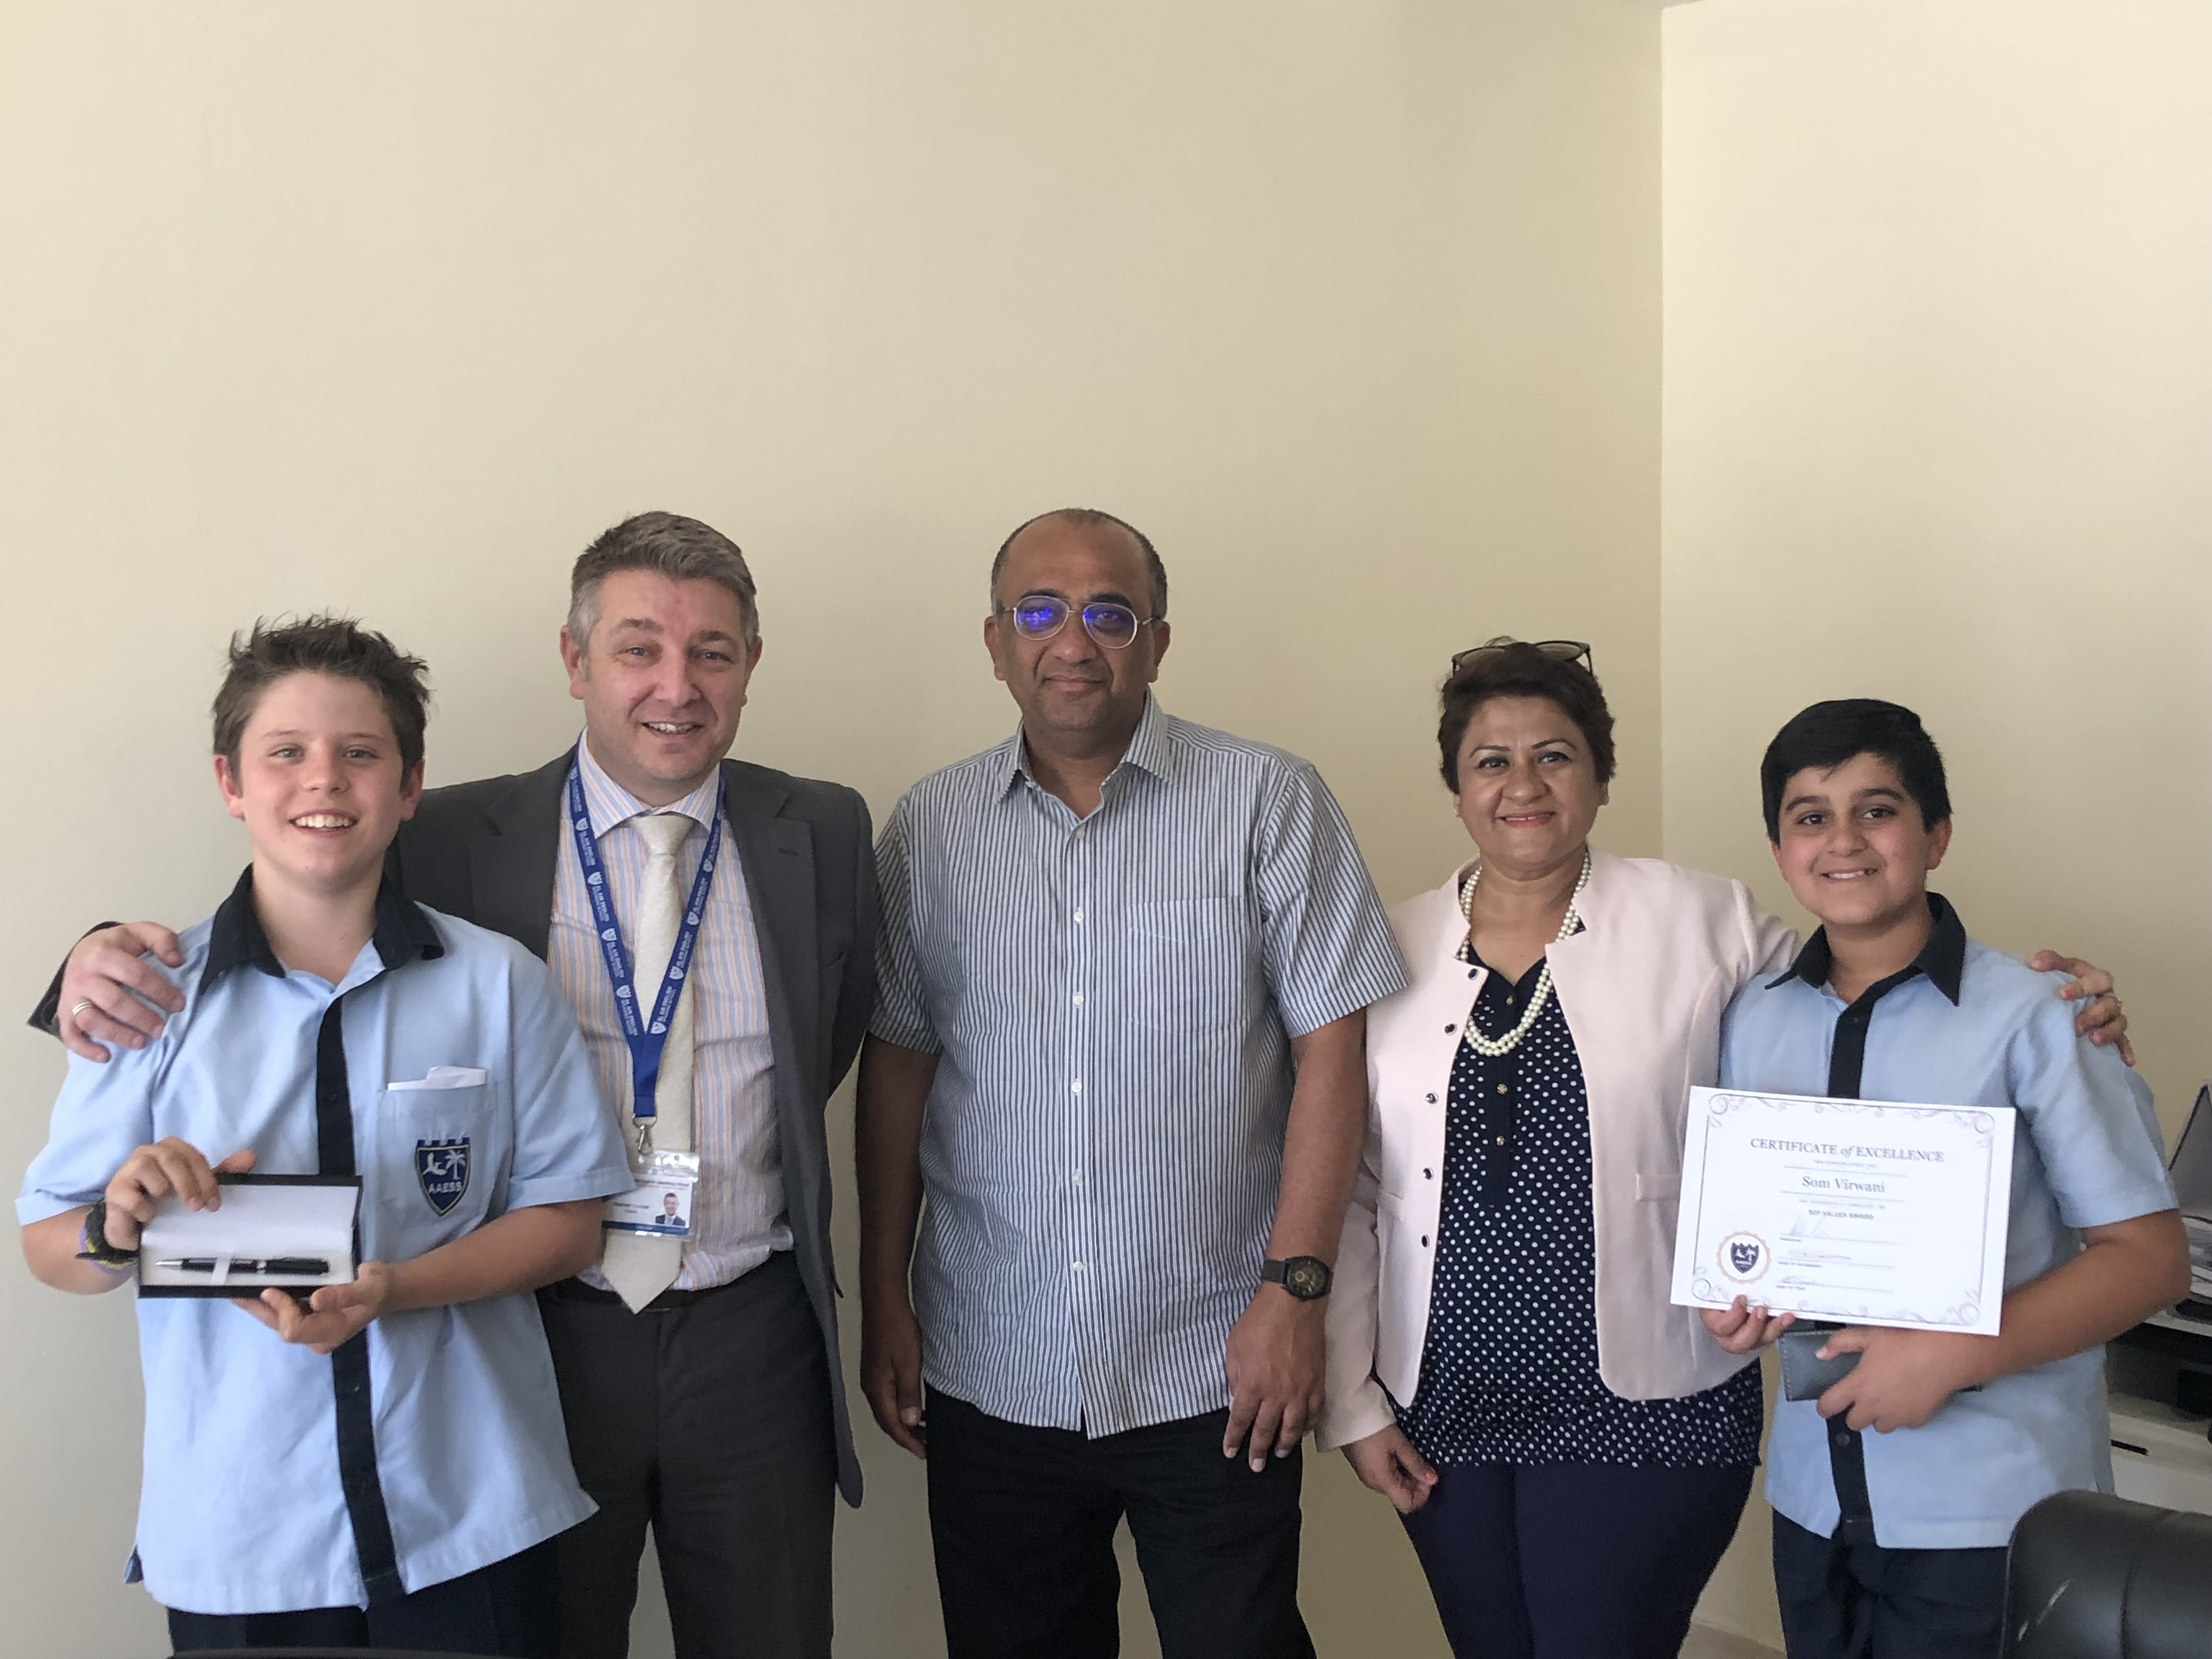 Awards for Som Virwani and Myles Domino Church in SCF Values